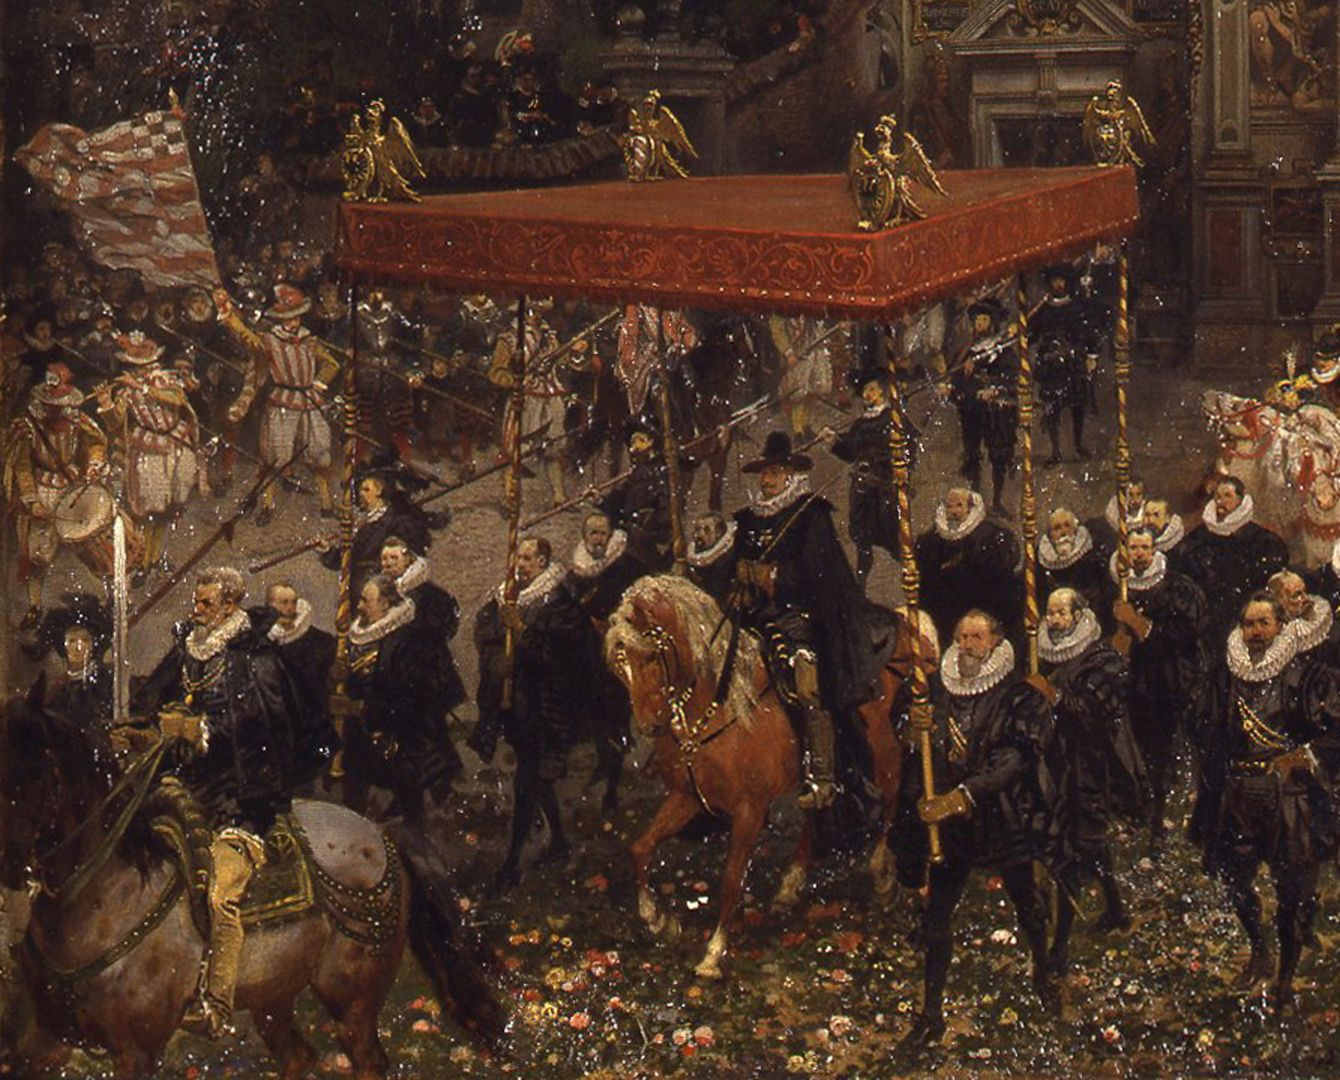 Exodus of Emperor Matthias from Nuremberg 1612 The Emperor on horseback under a canopy carried by patricians